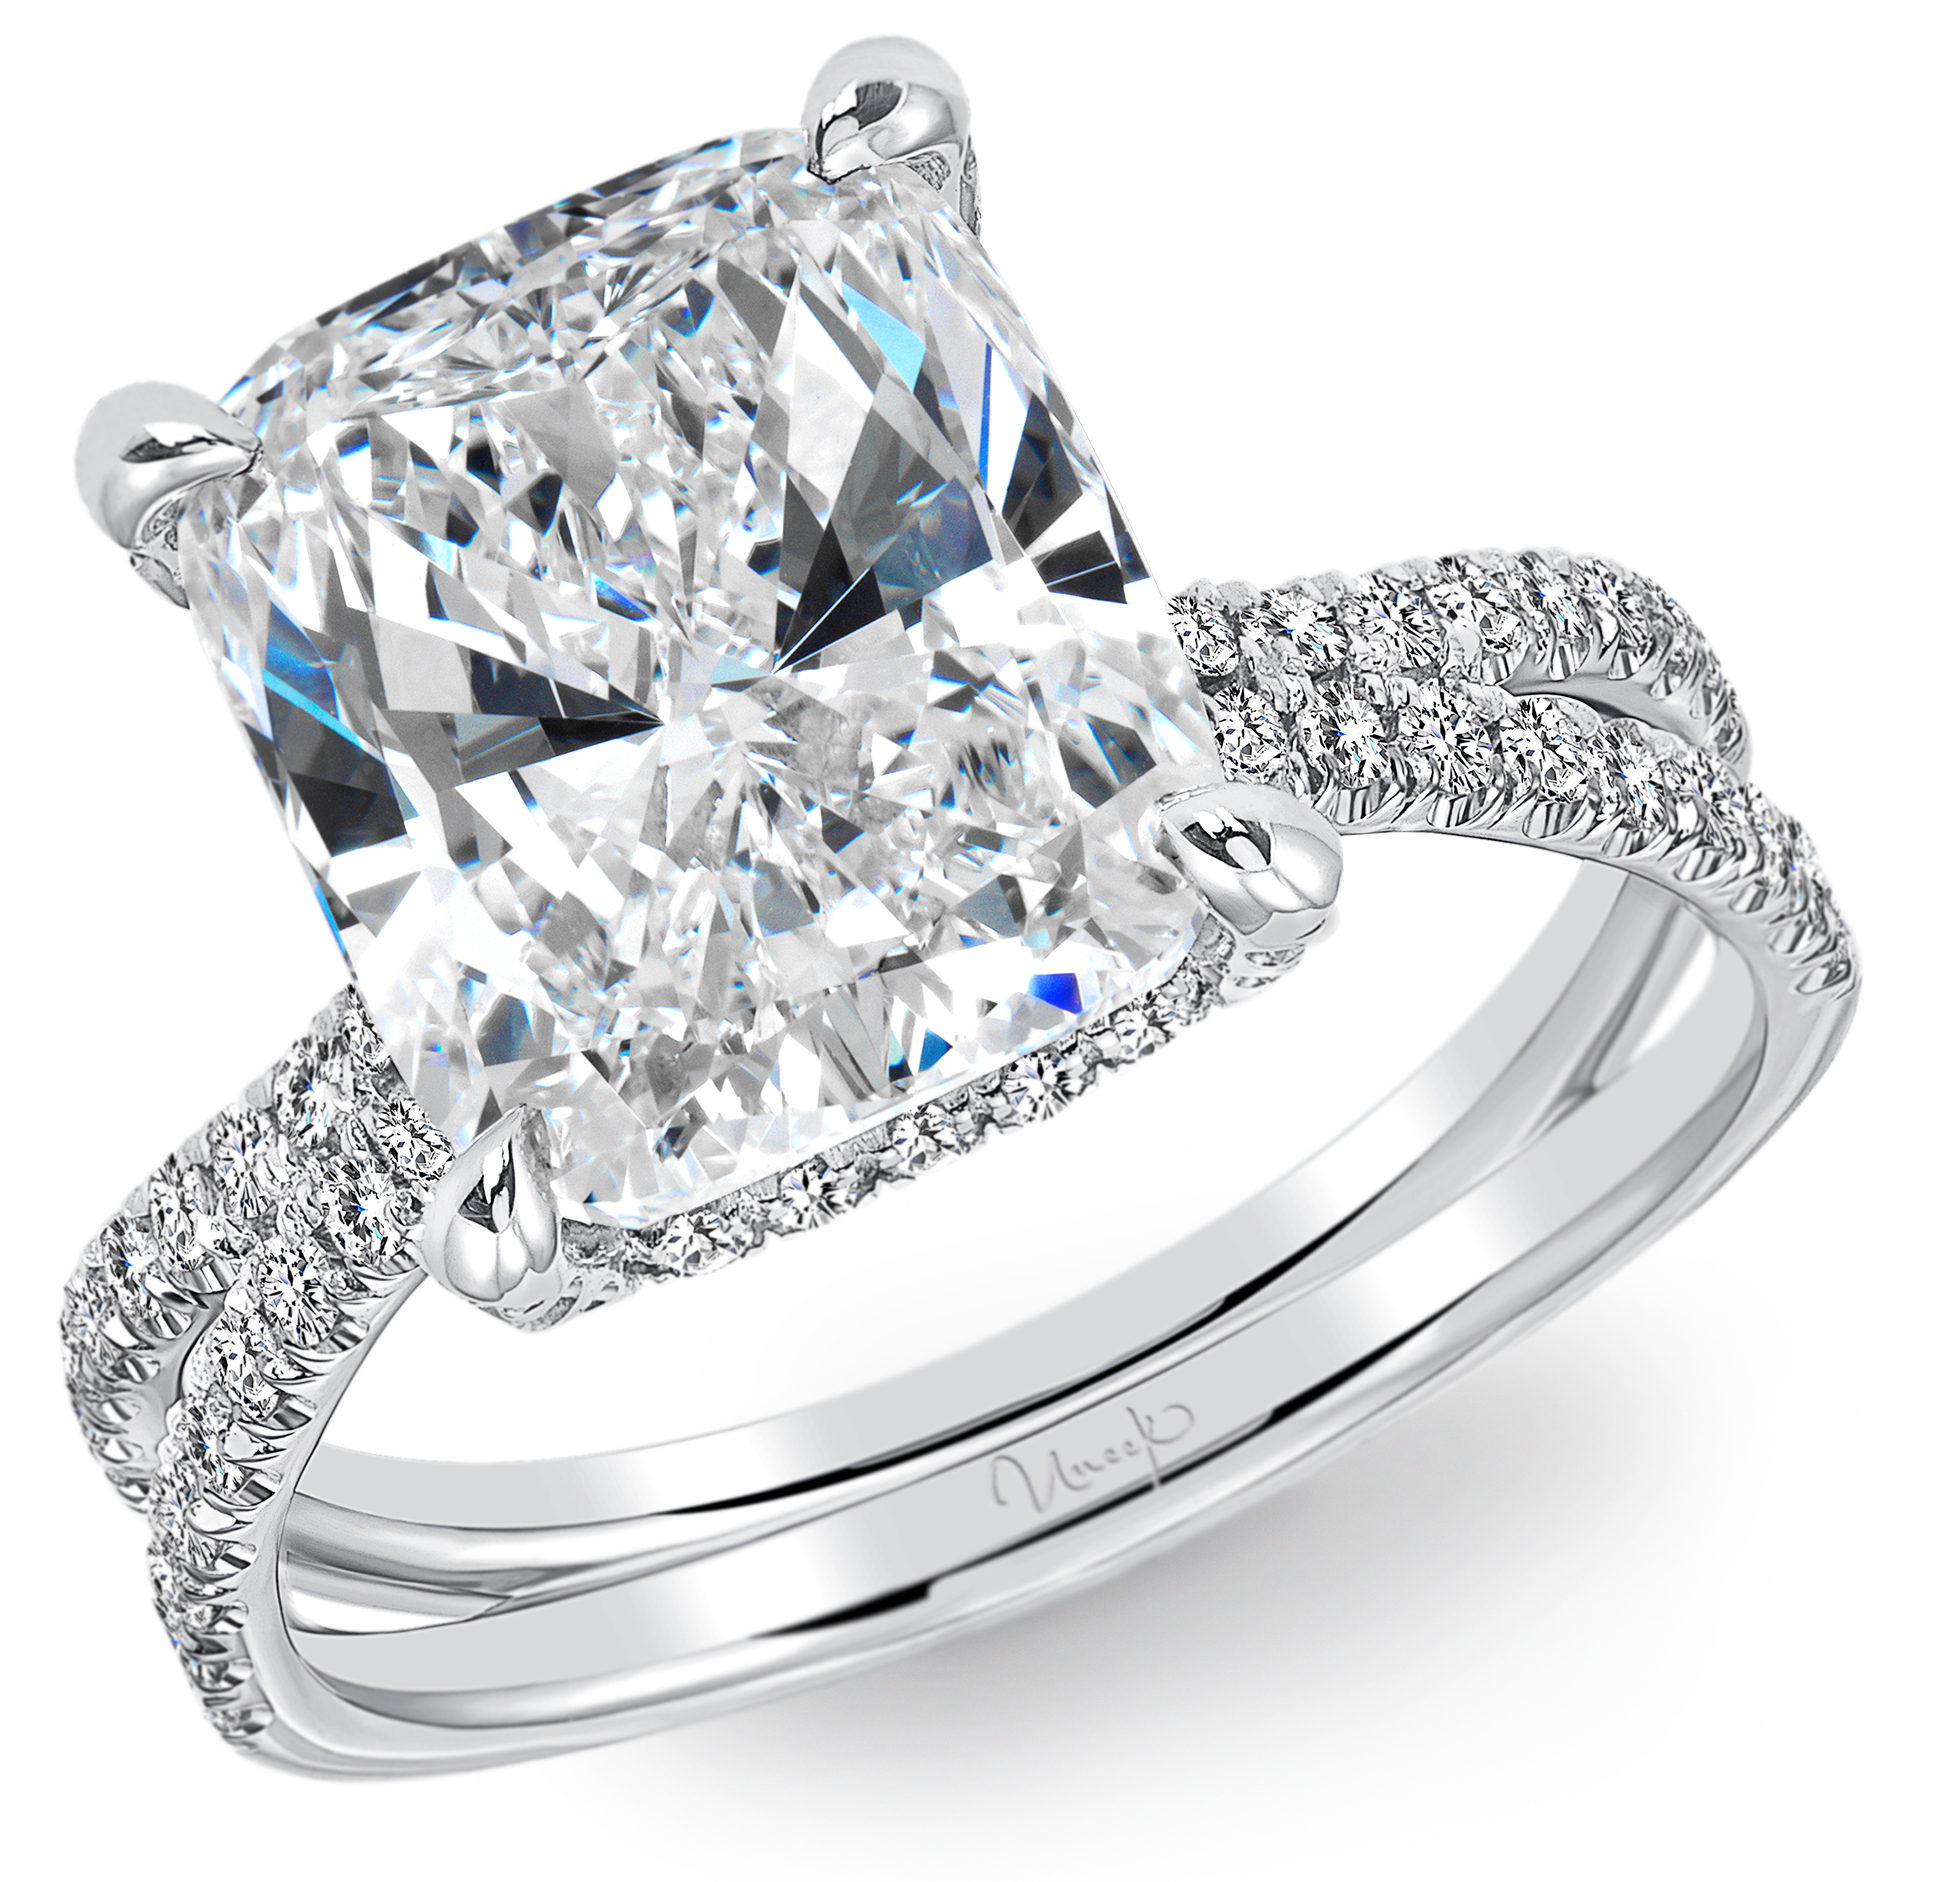 Best Engagement and Wedding Rings (Over$5,000) – 2019 Winners